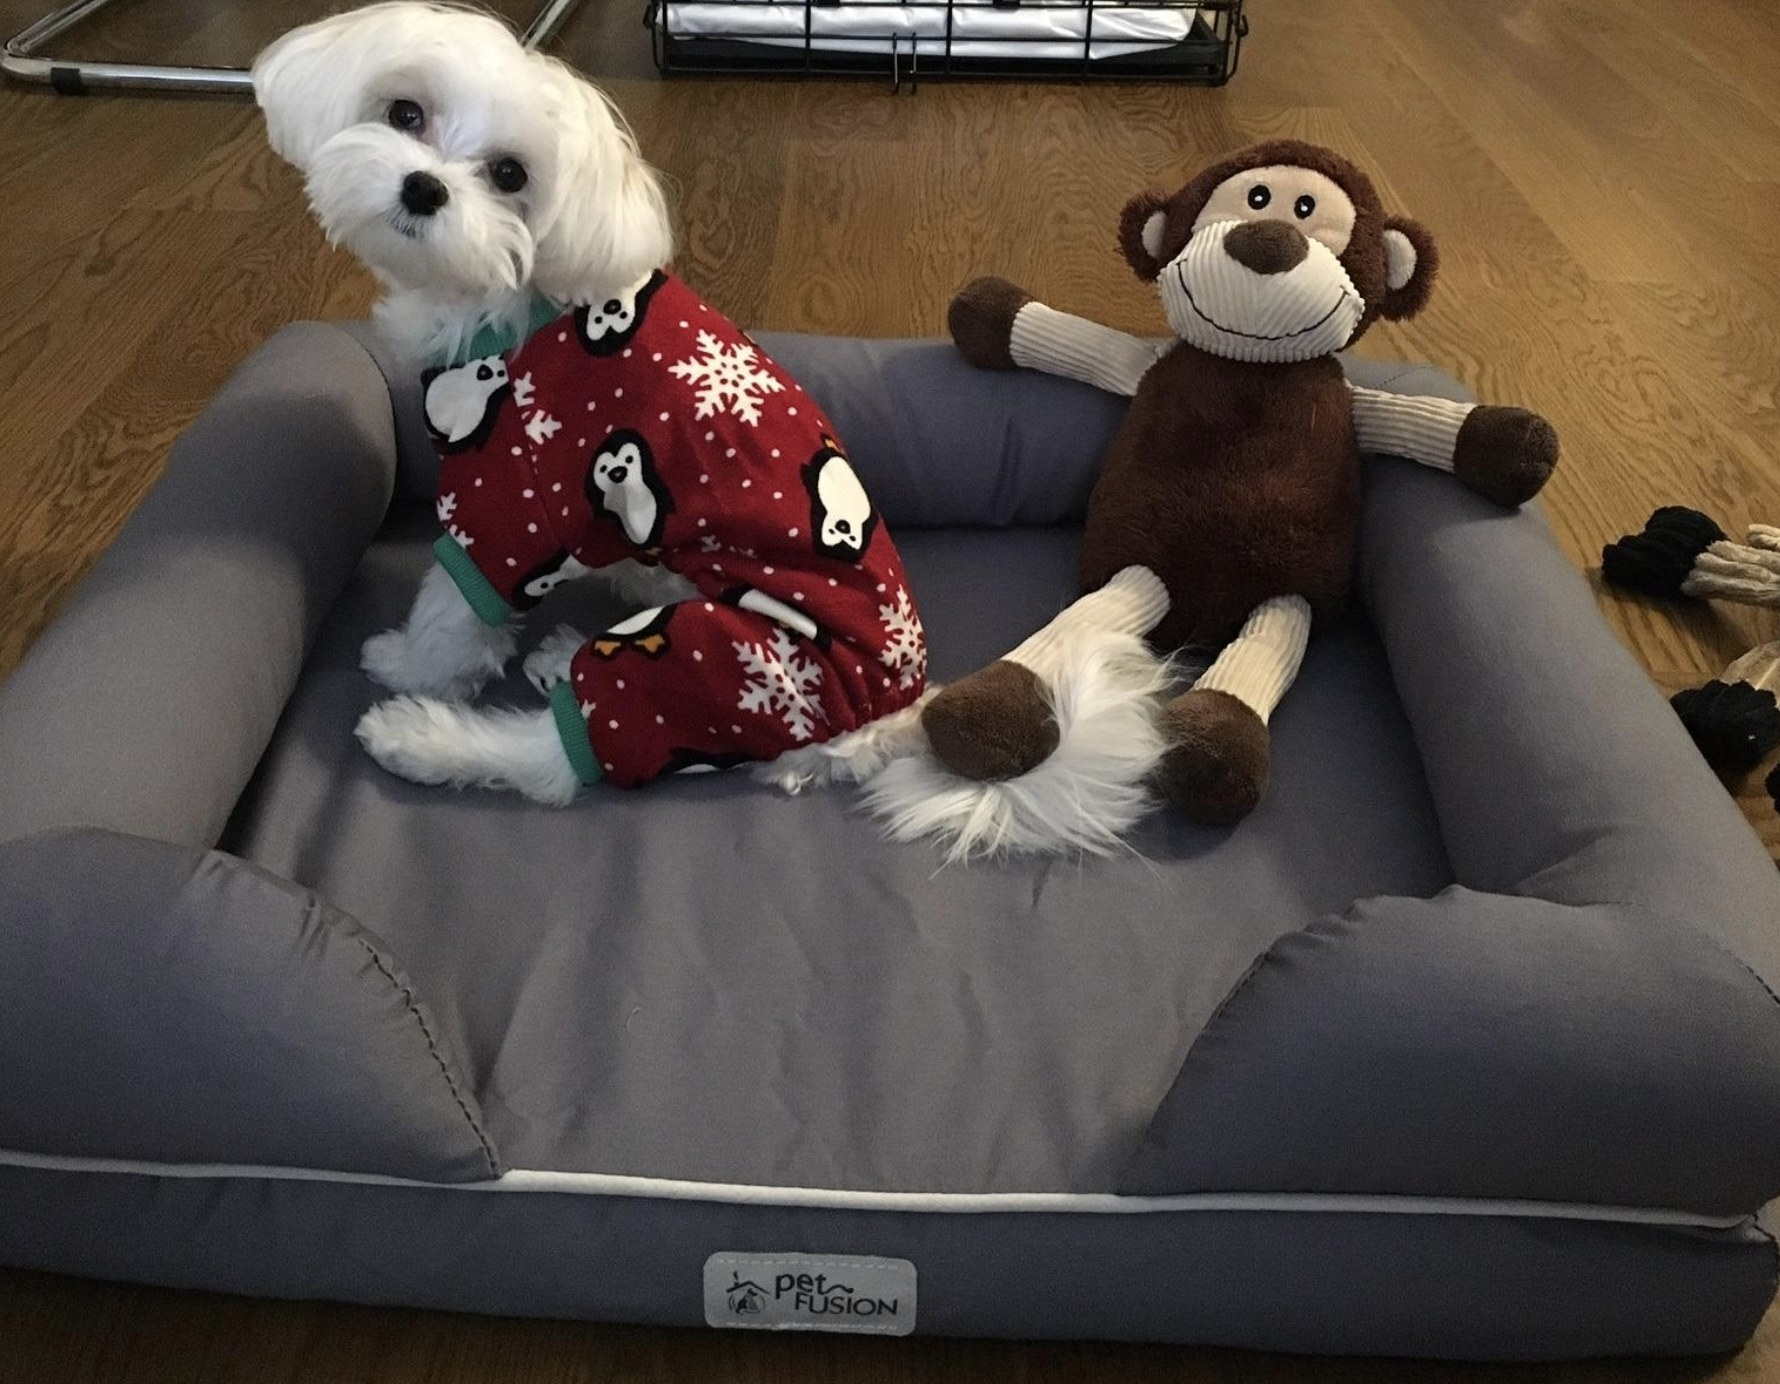 a white dog with holiday pajamas on sitting on a grey dog bed